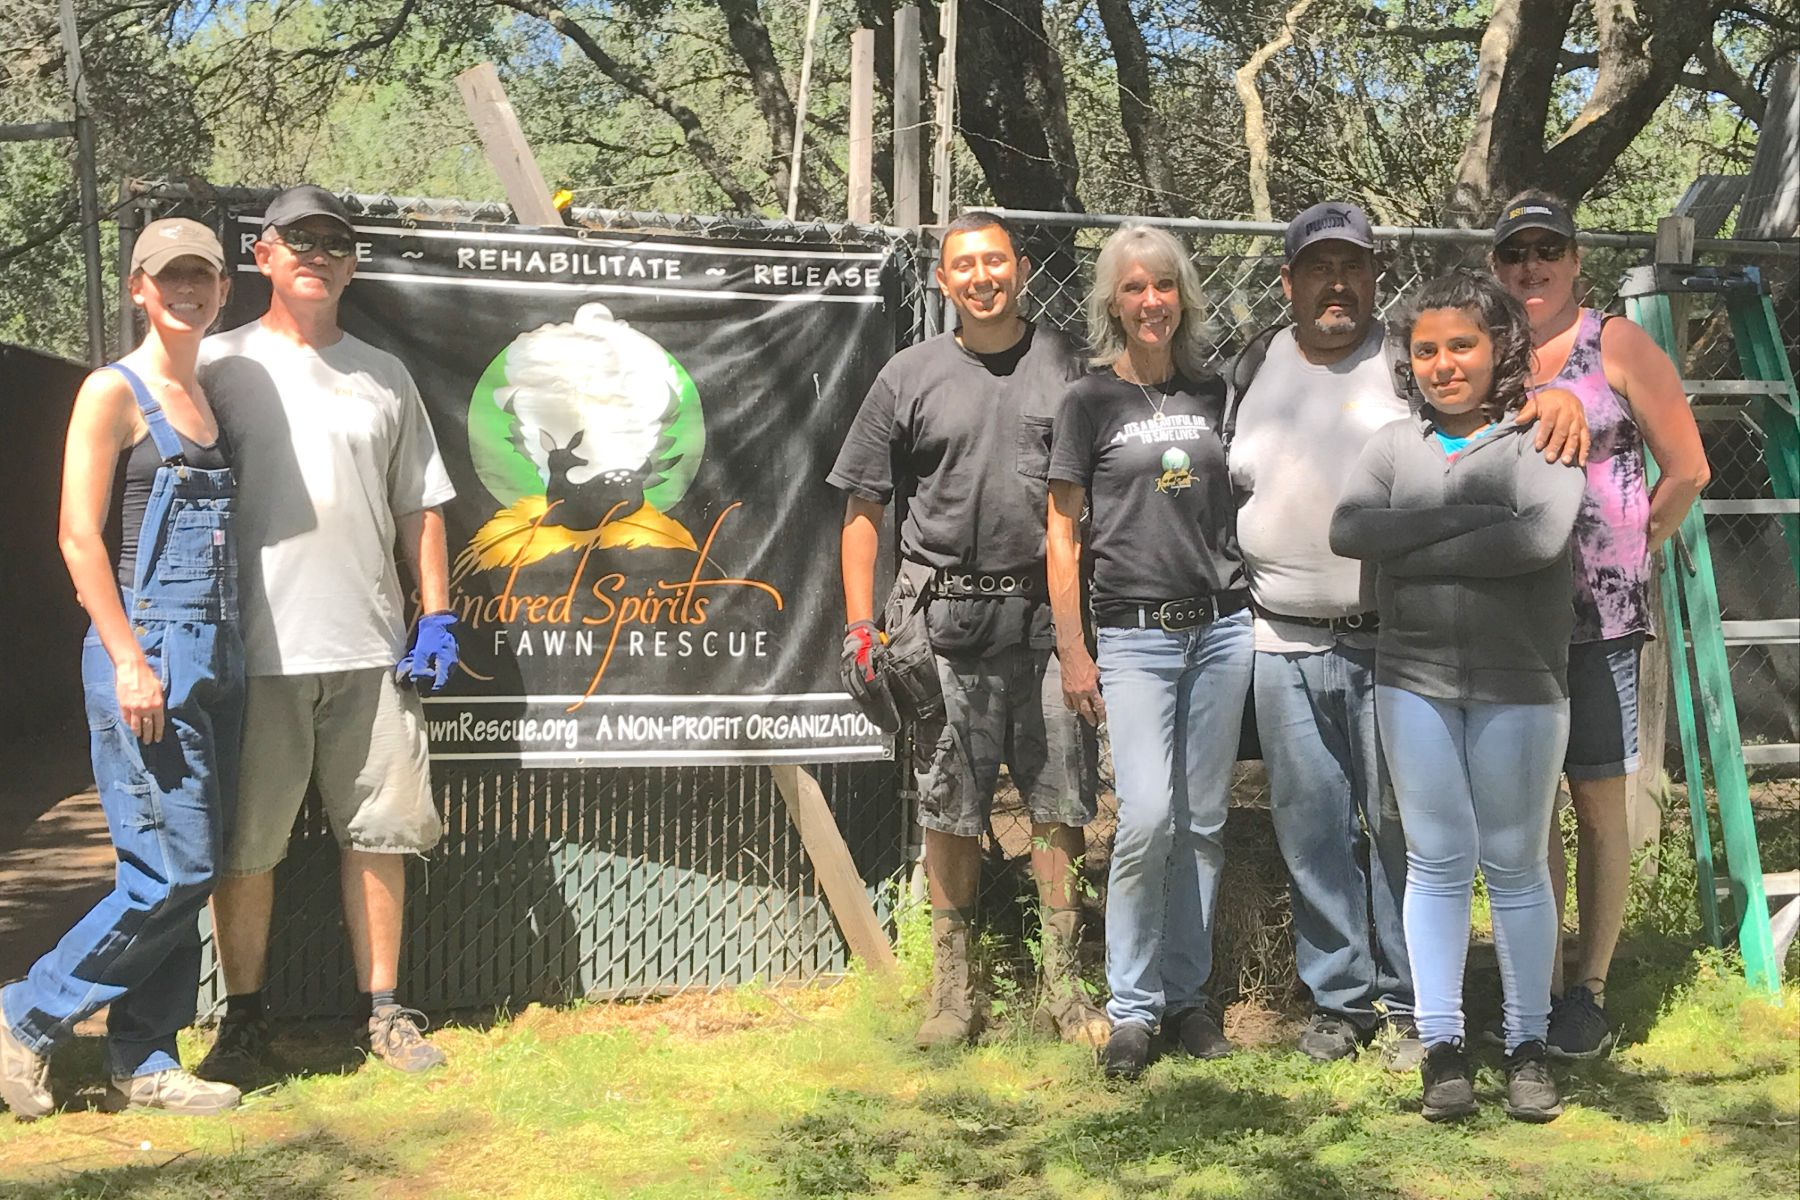 ESI Builders Team doing non-profit work at Kindred Spirits Fawn Rescue